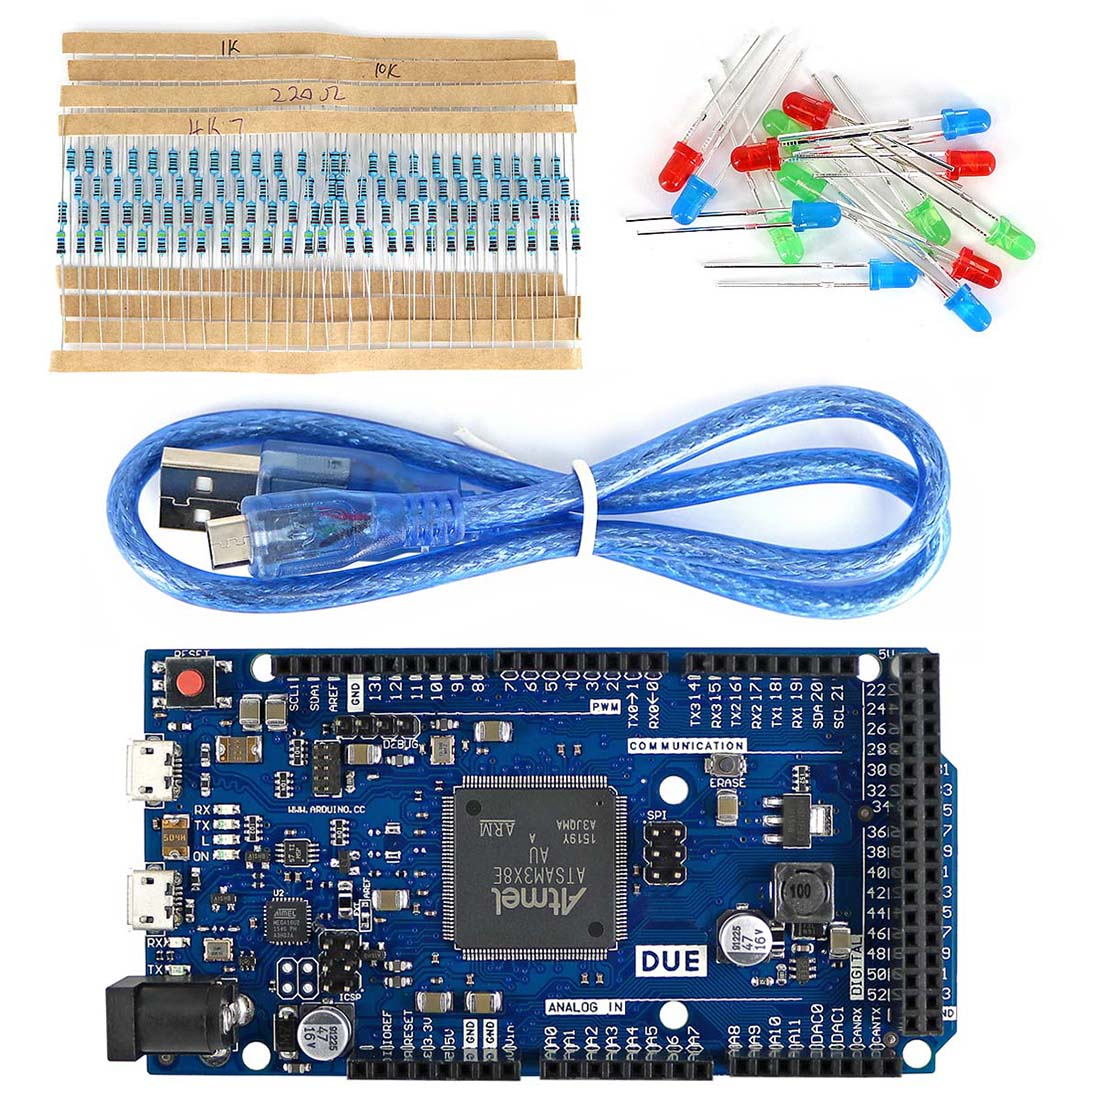 DUE R3 Development Board Kit With USB Cable/Resistor/LED For Arduino